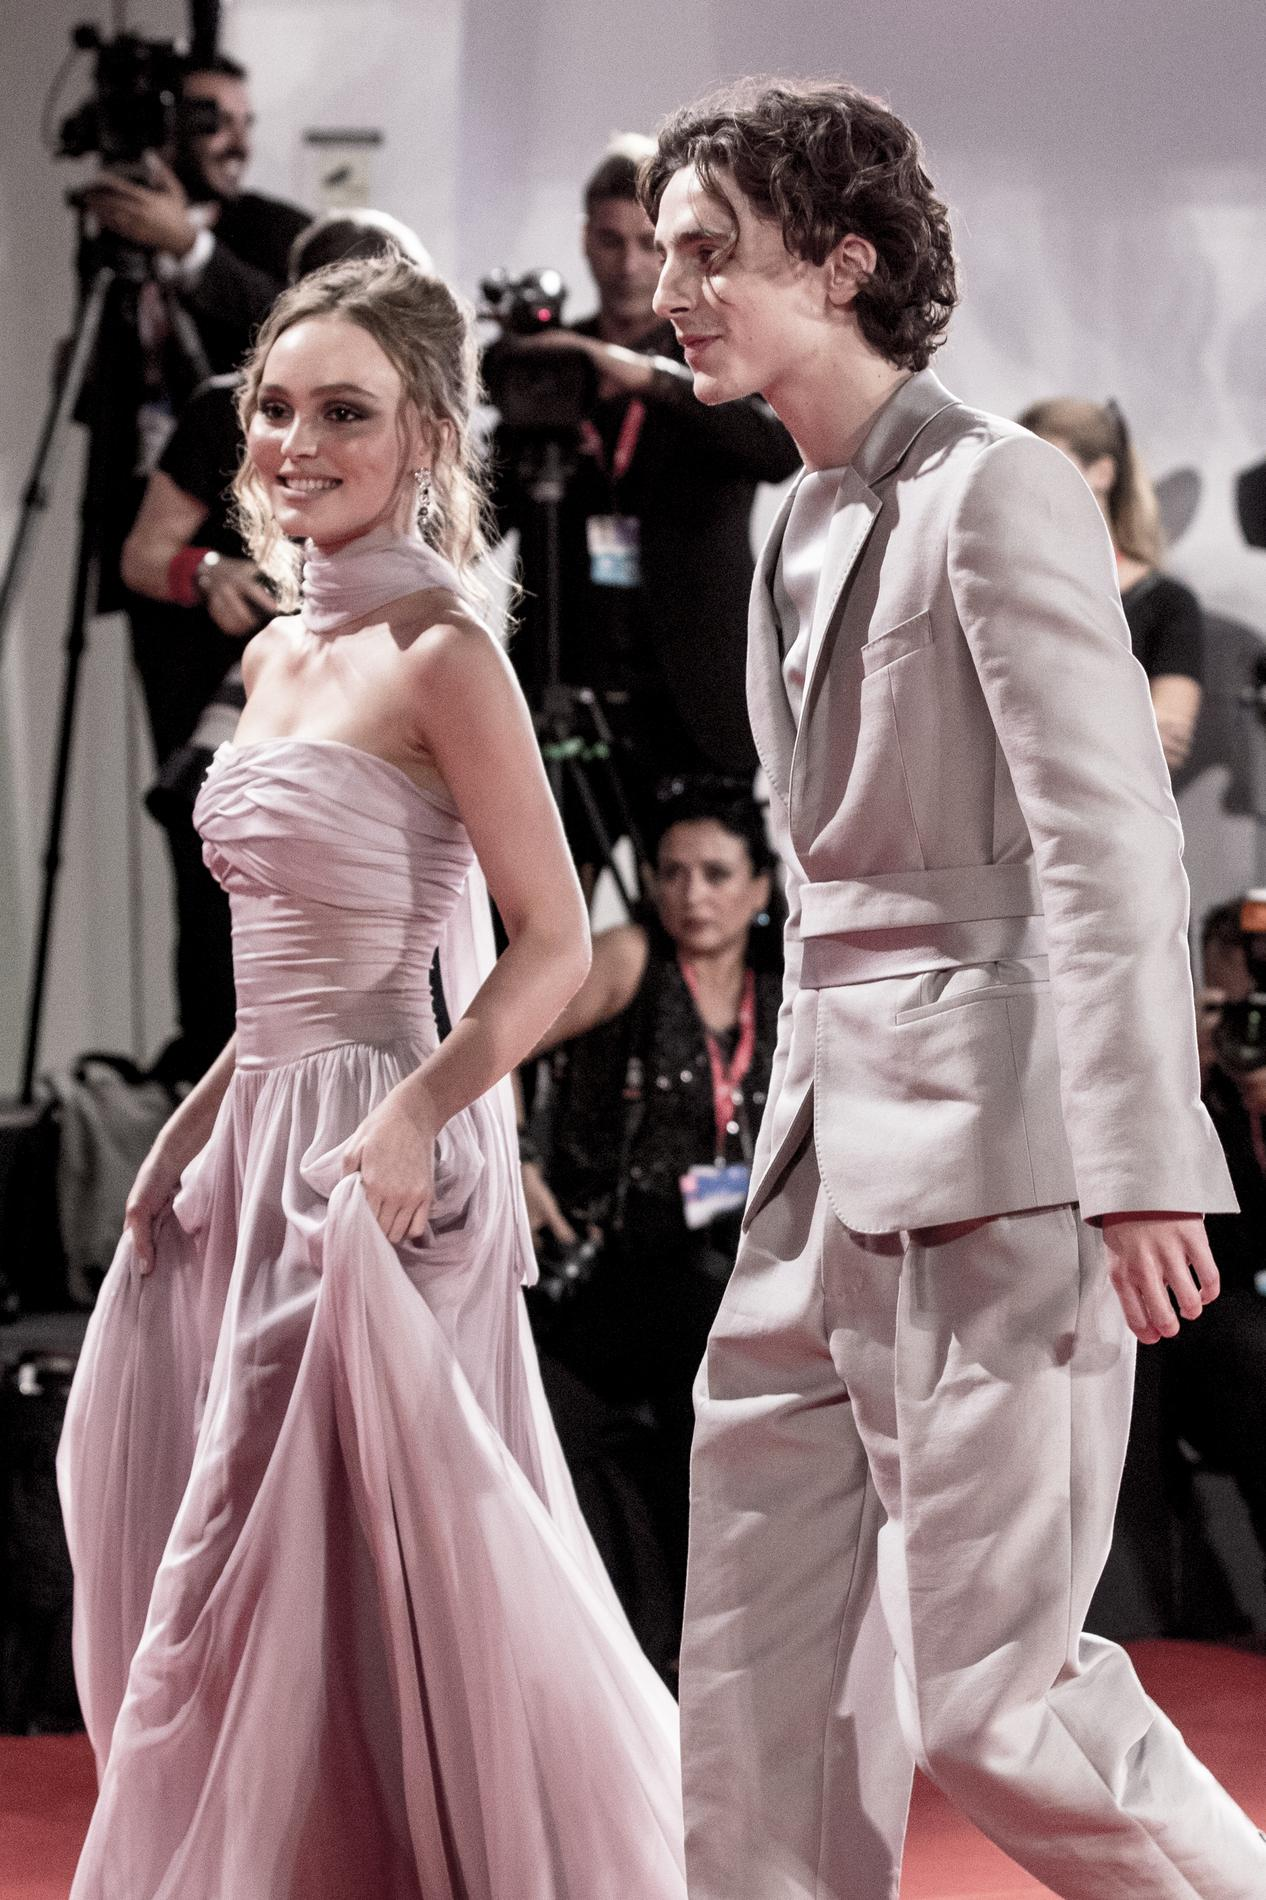 Lily Rose Depp Et Timothee Chalamet Situation Amoureuse Compliquee Madame Figaro